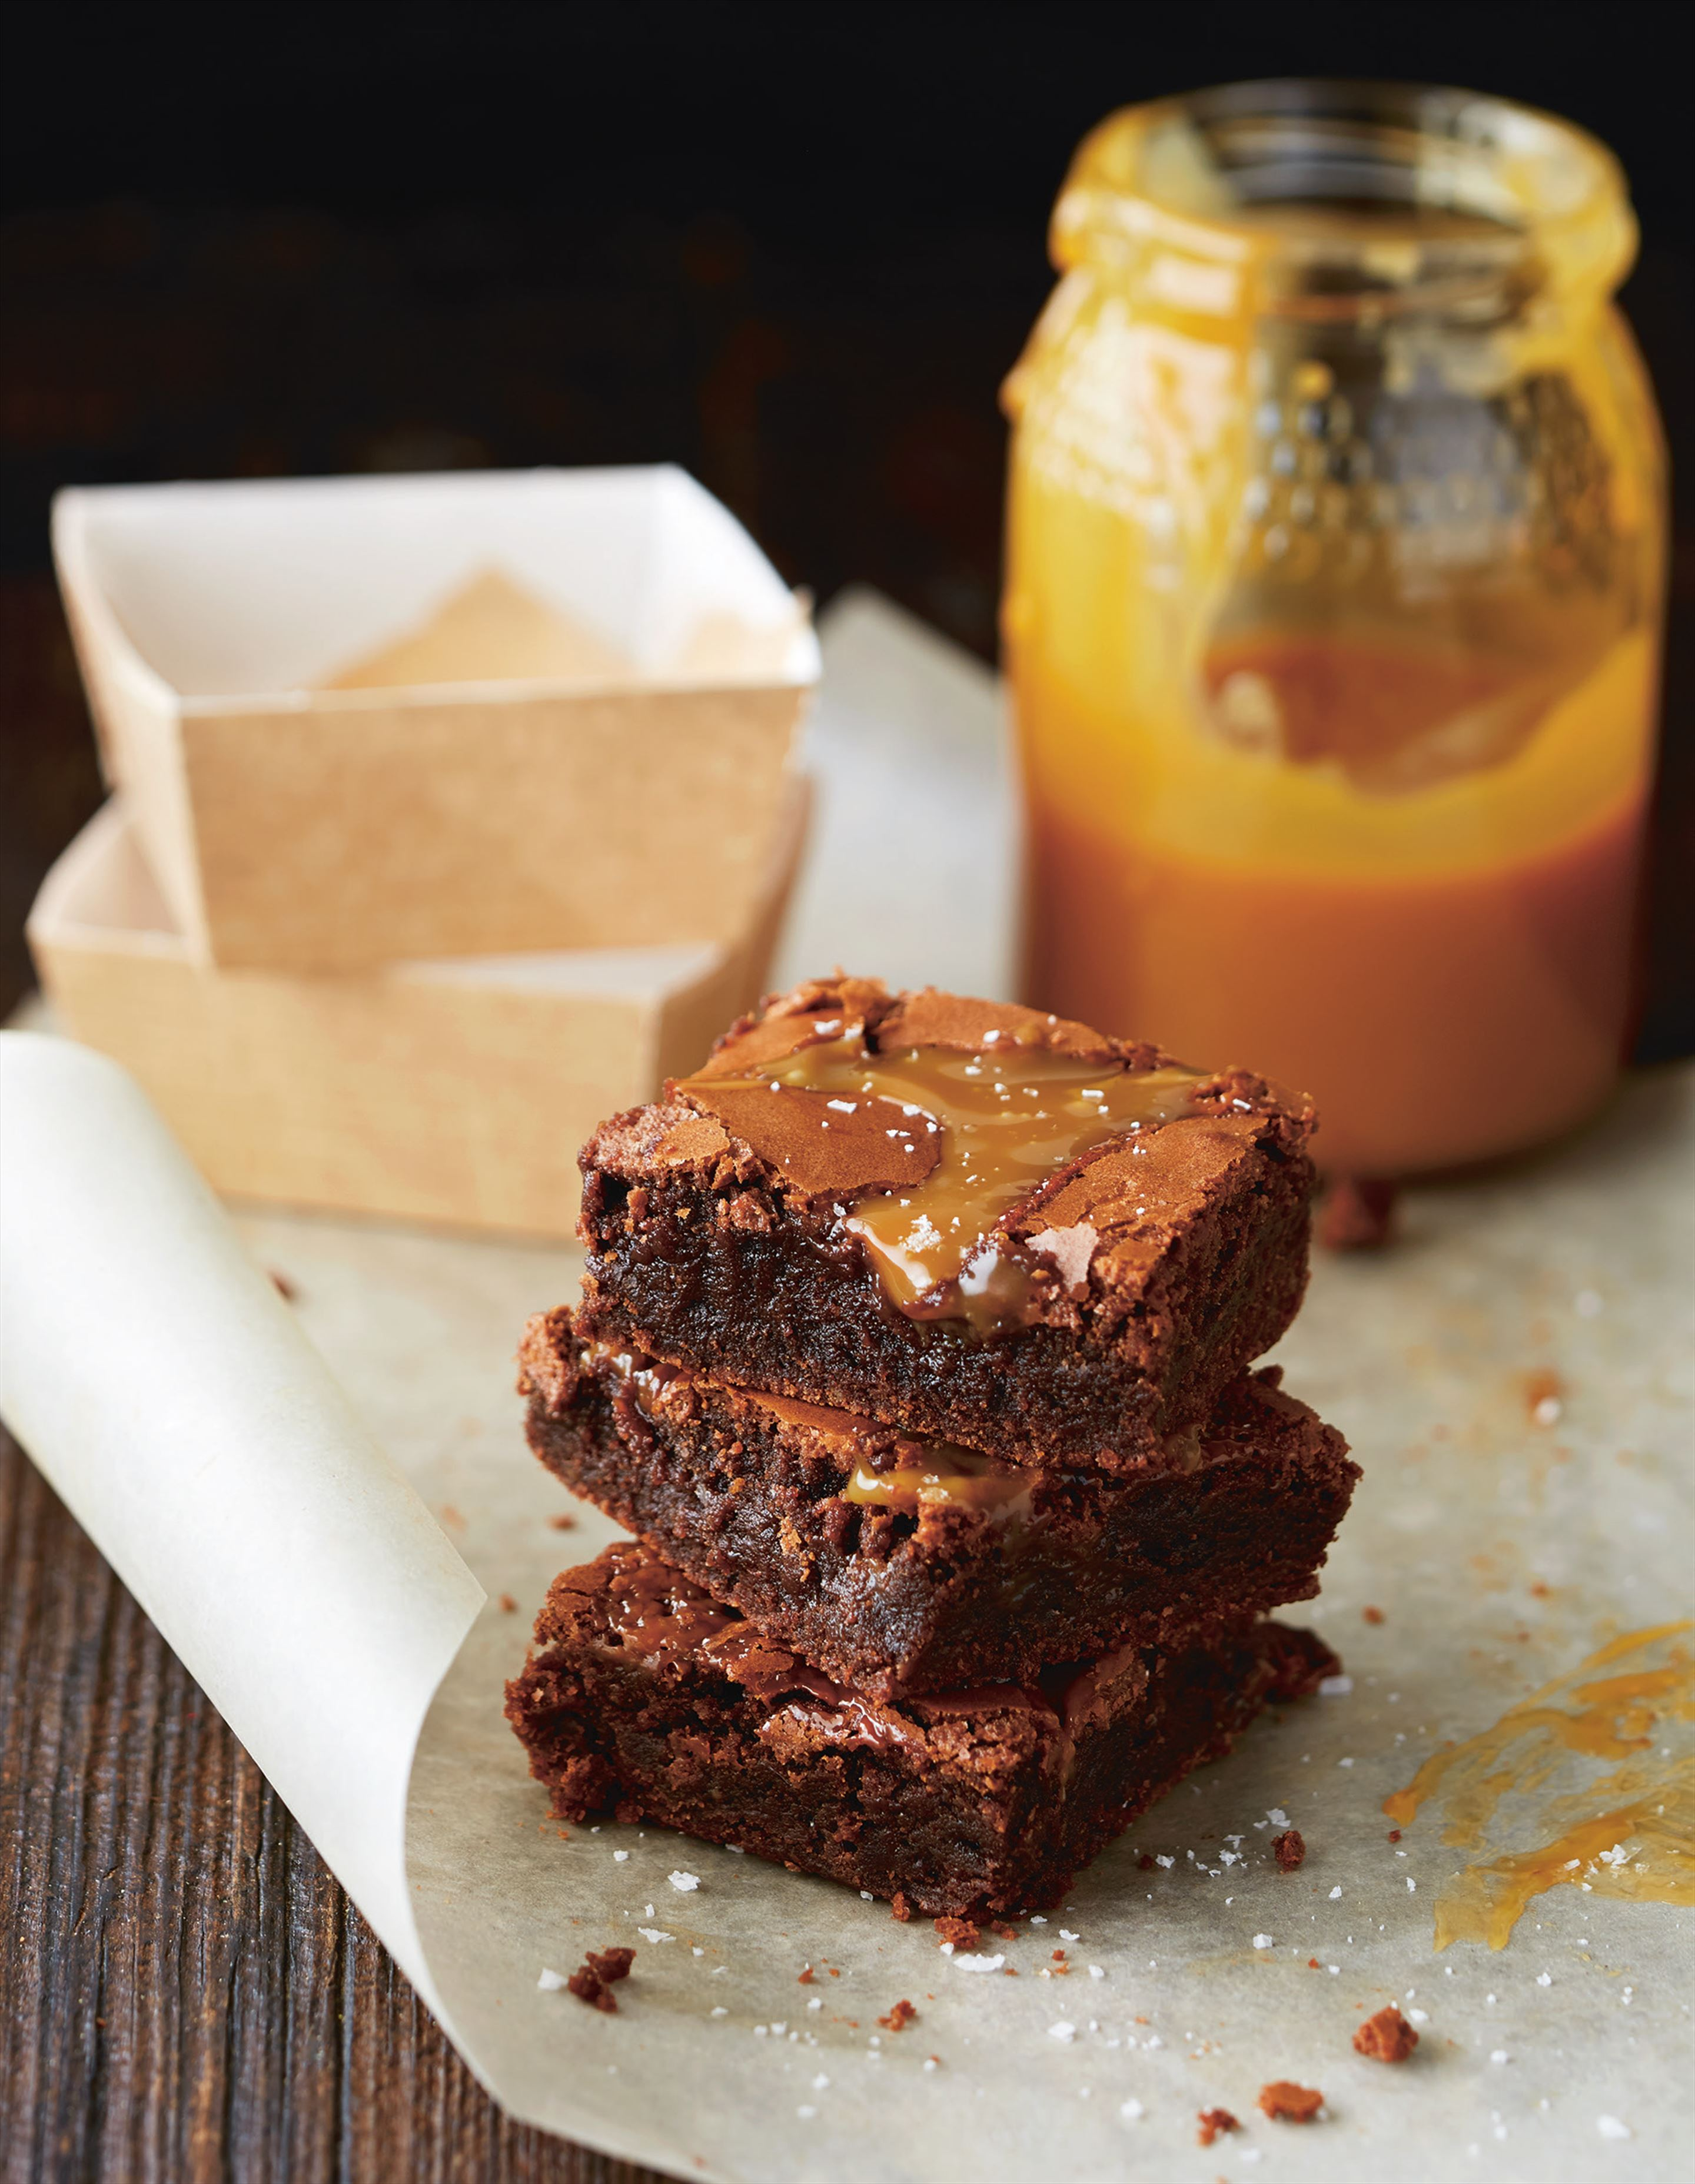 Brownies with salted caramel